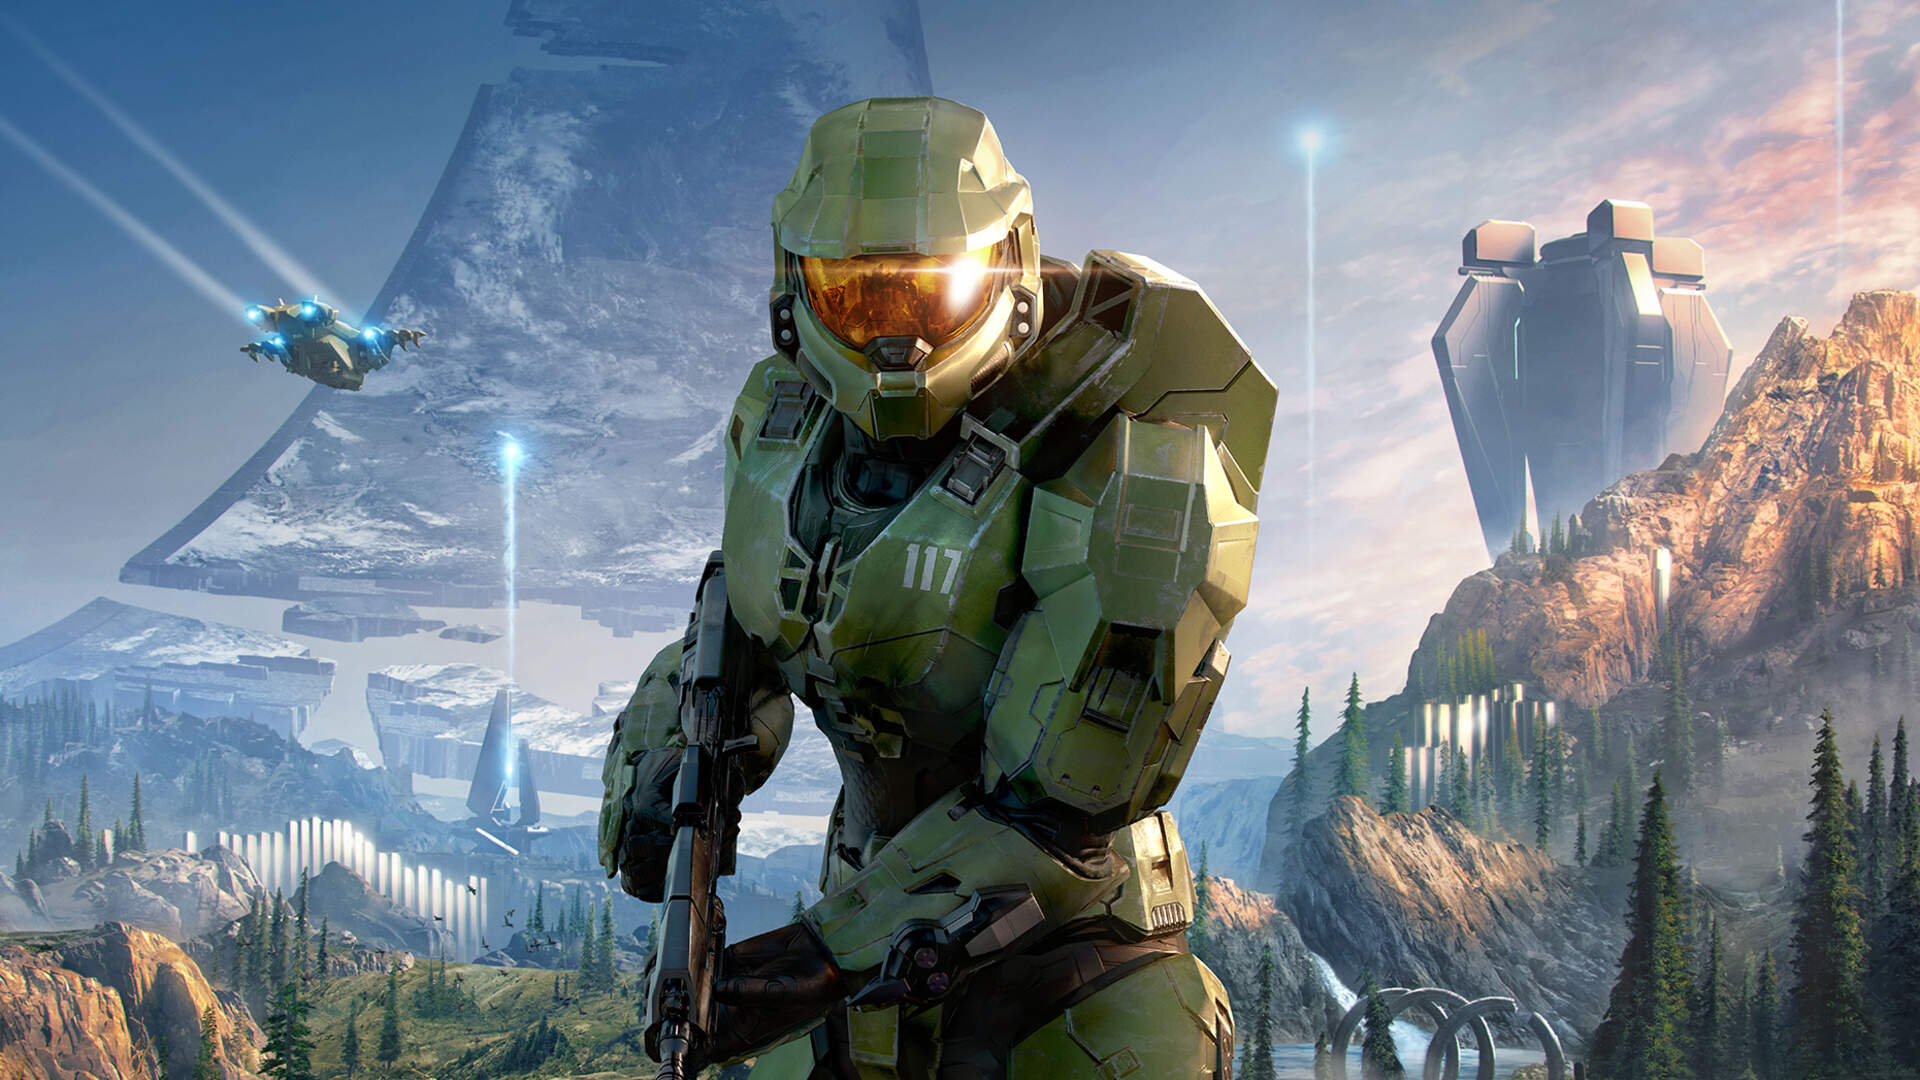 Halo Infinite Was Delayed Instead of Splitting Up Parts of the Game